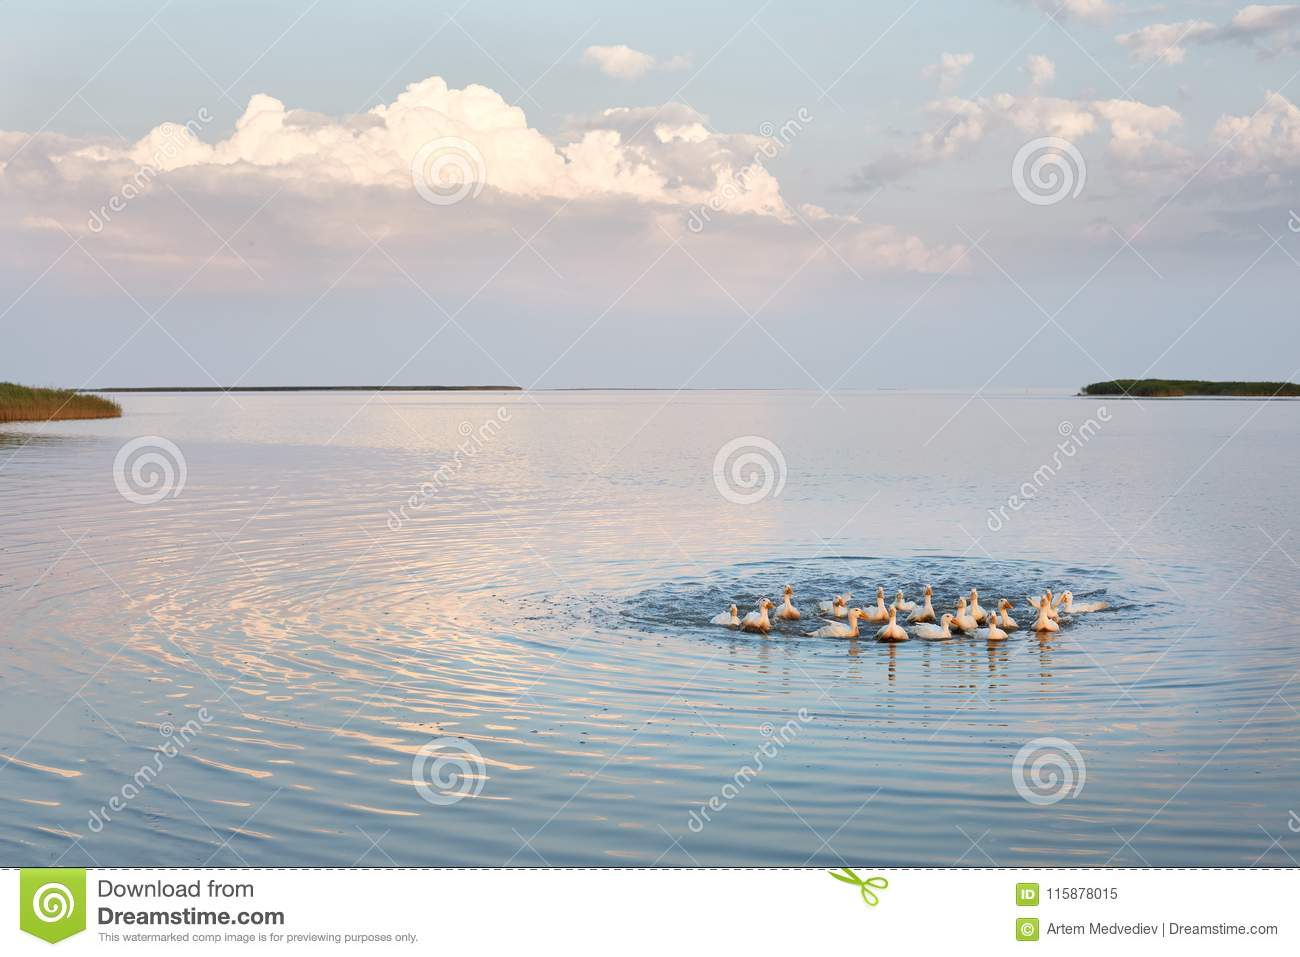 Village geese flock bathing in the calm water in lake, creek or pond. Peacefull landscape with clouds reflected on